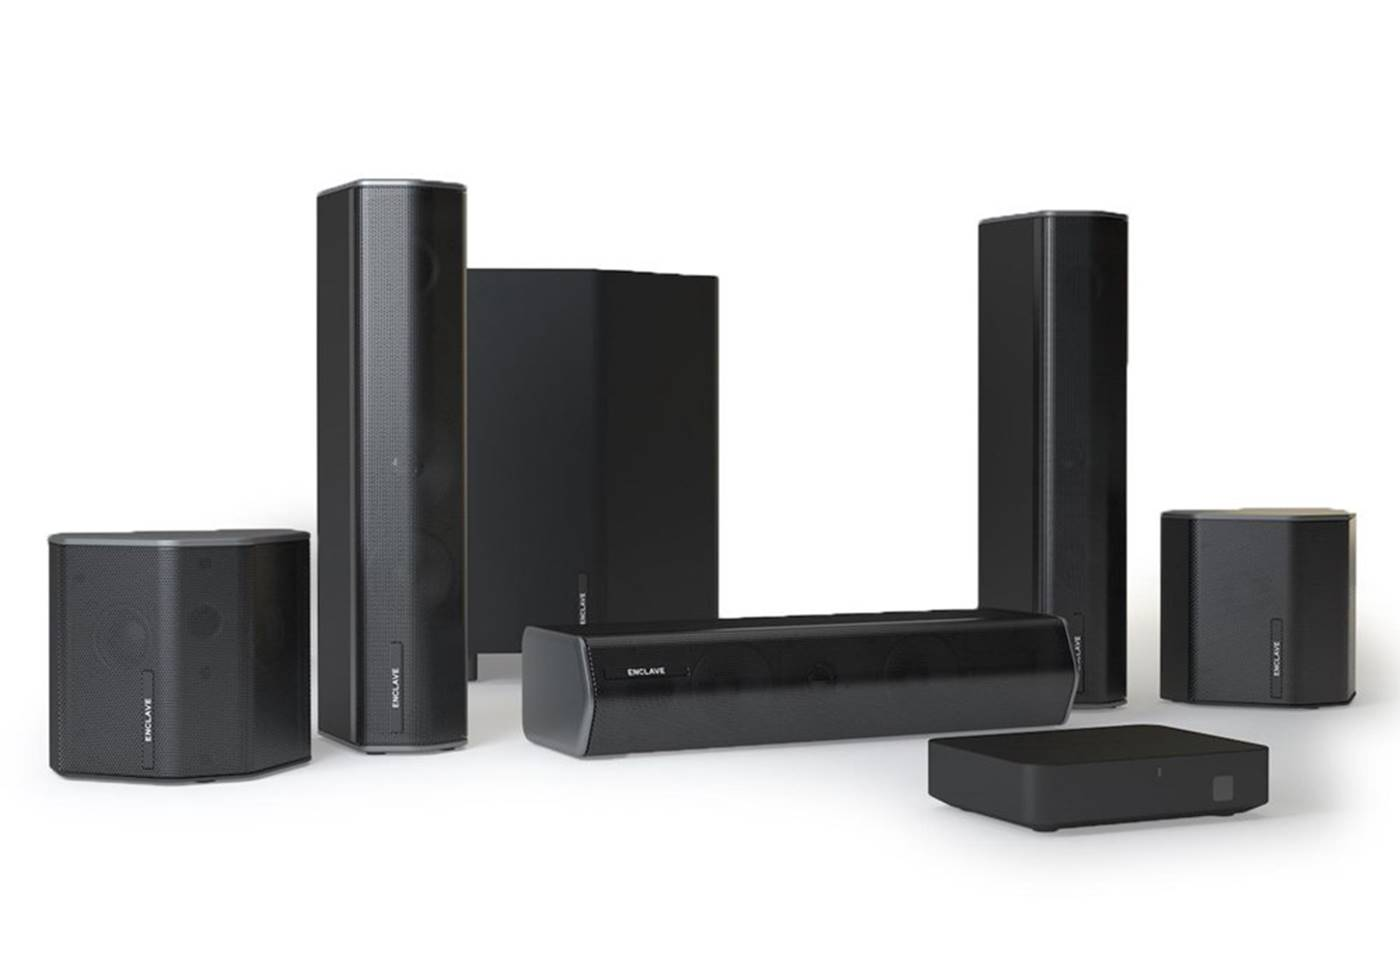 Enclave CineHome II Wireless Home Theater